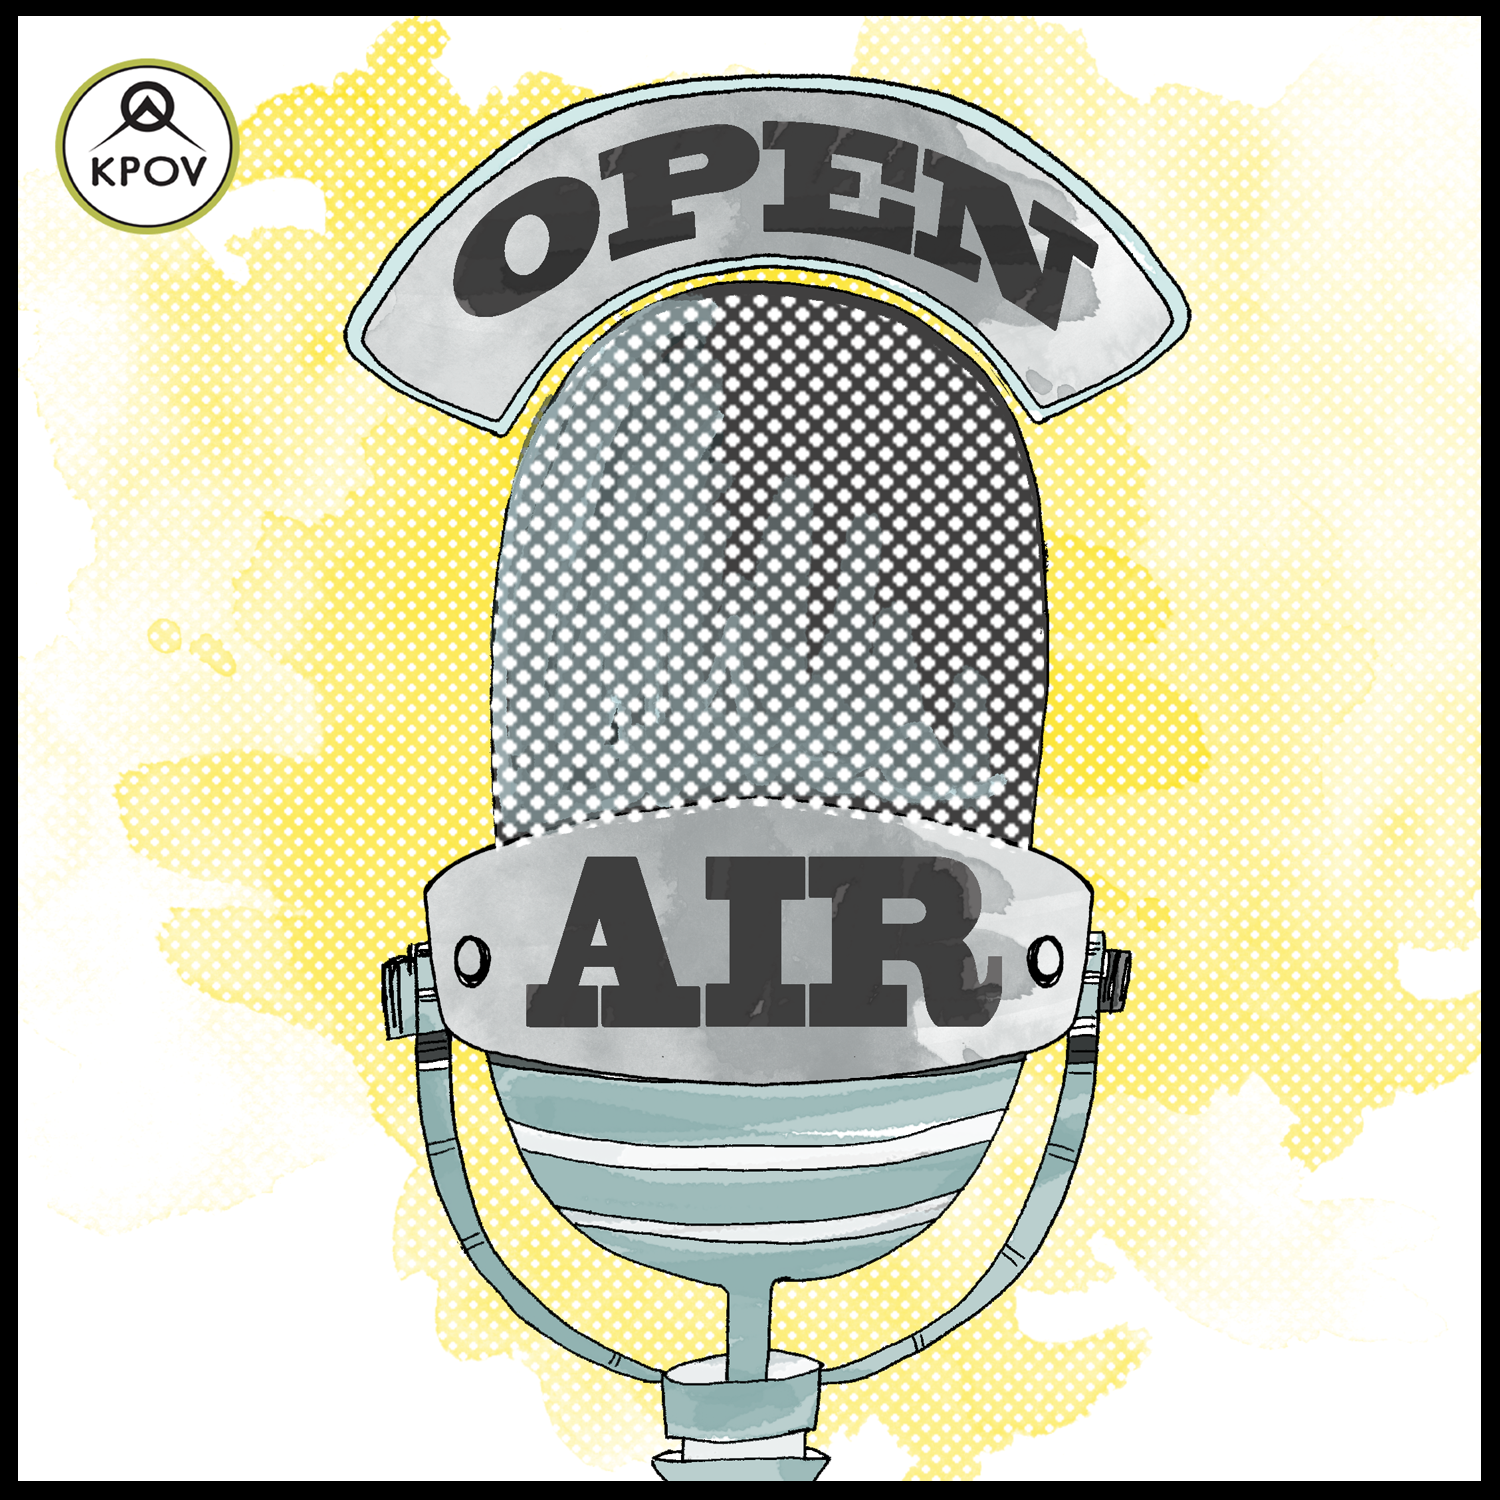 - An eclectic mix of people, personalities, issues, celebrations. You name it, we talk about it! The Open Air podcast features stories and interviews which originally aired on Wednesdays at 5:00pm on KPOV, 88.9fm. You never know who will be stopping by!Open Airis hosted by Dawn Newton